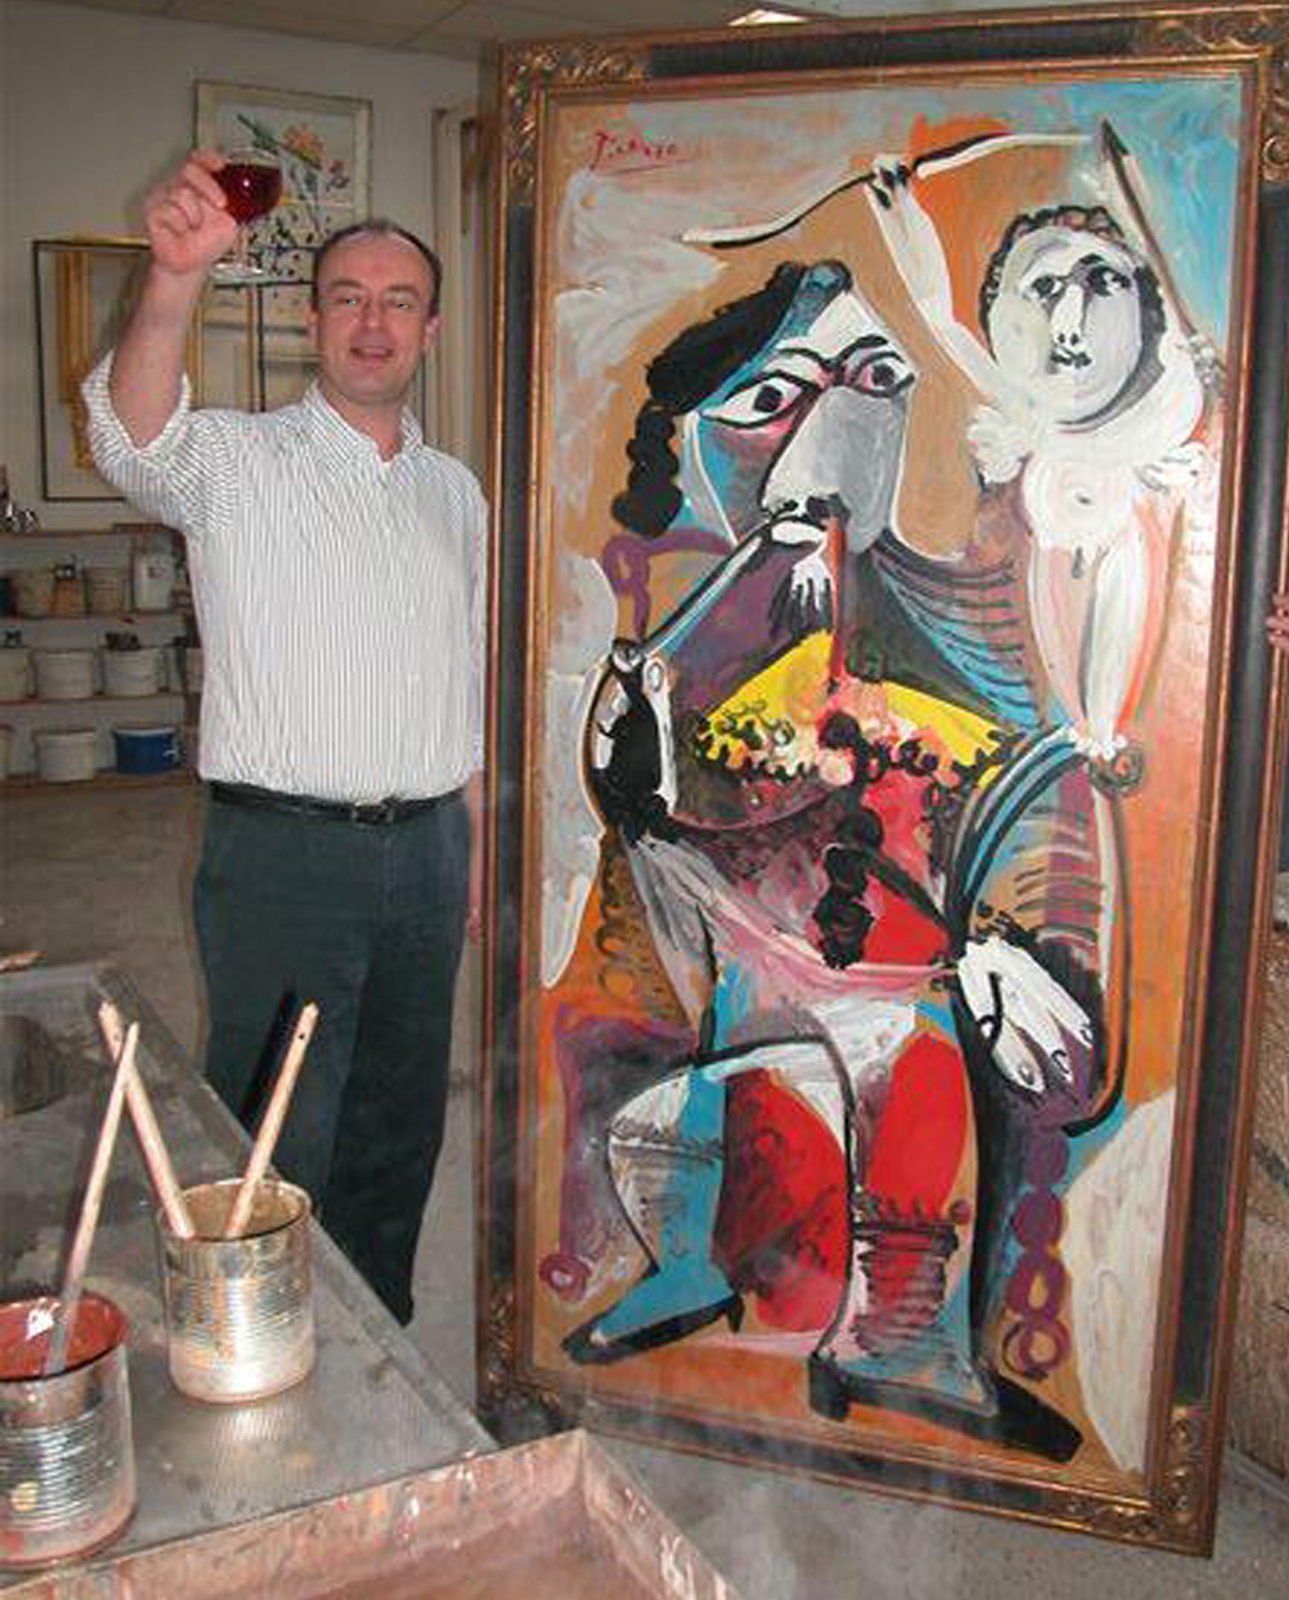 Peter with Picasso